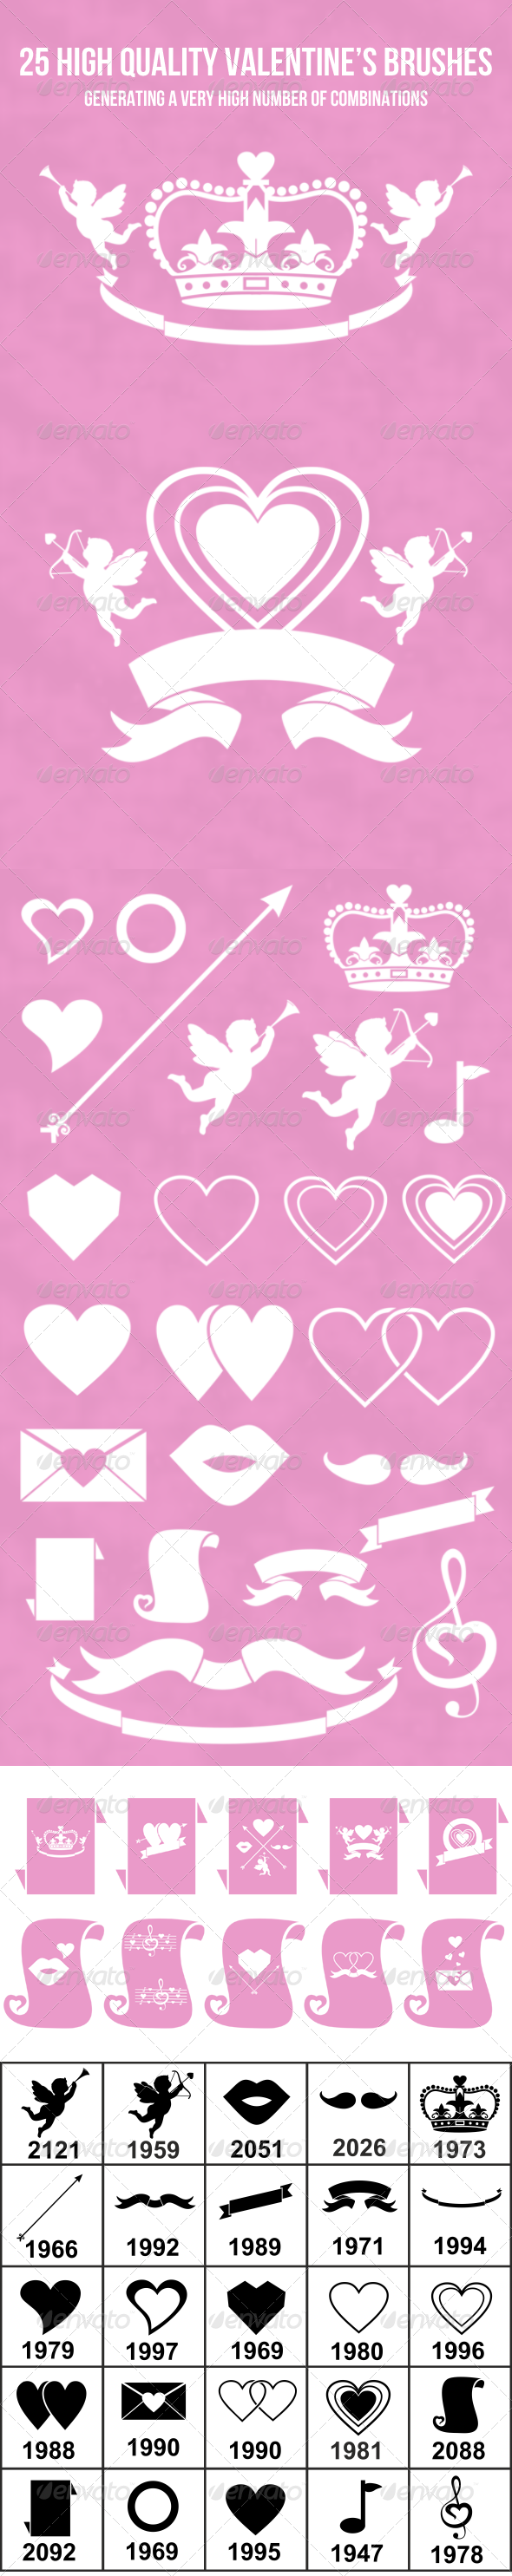 25 High Quality Valentine's Brush Set - Abstract Brushes